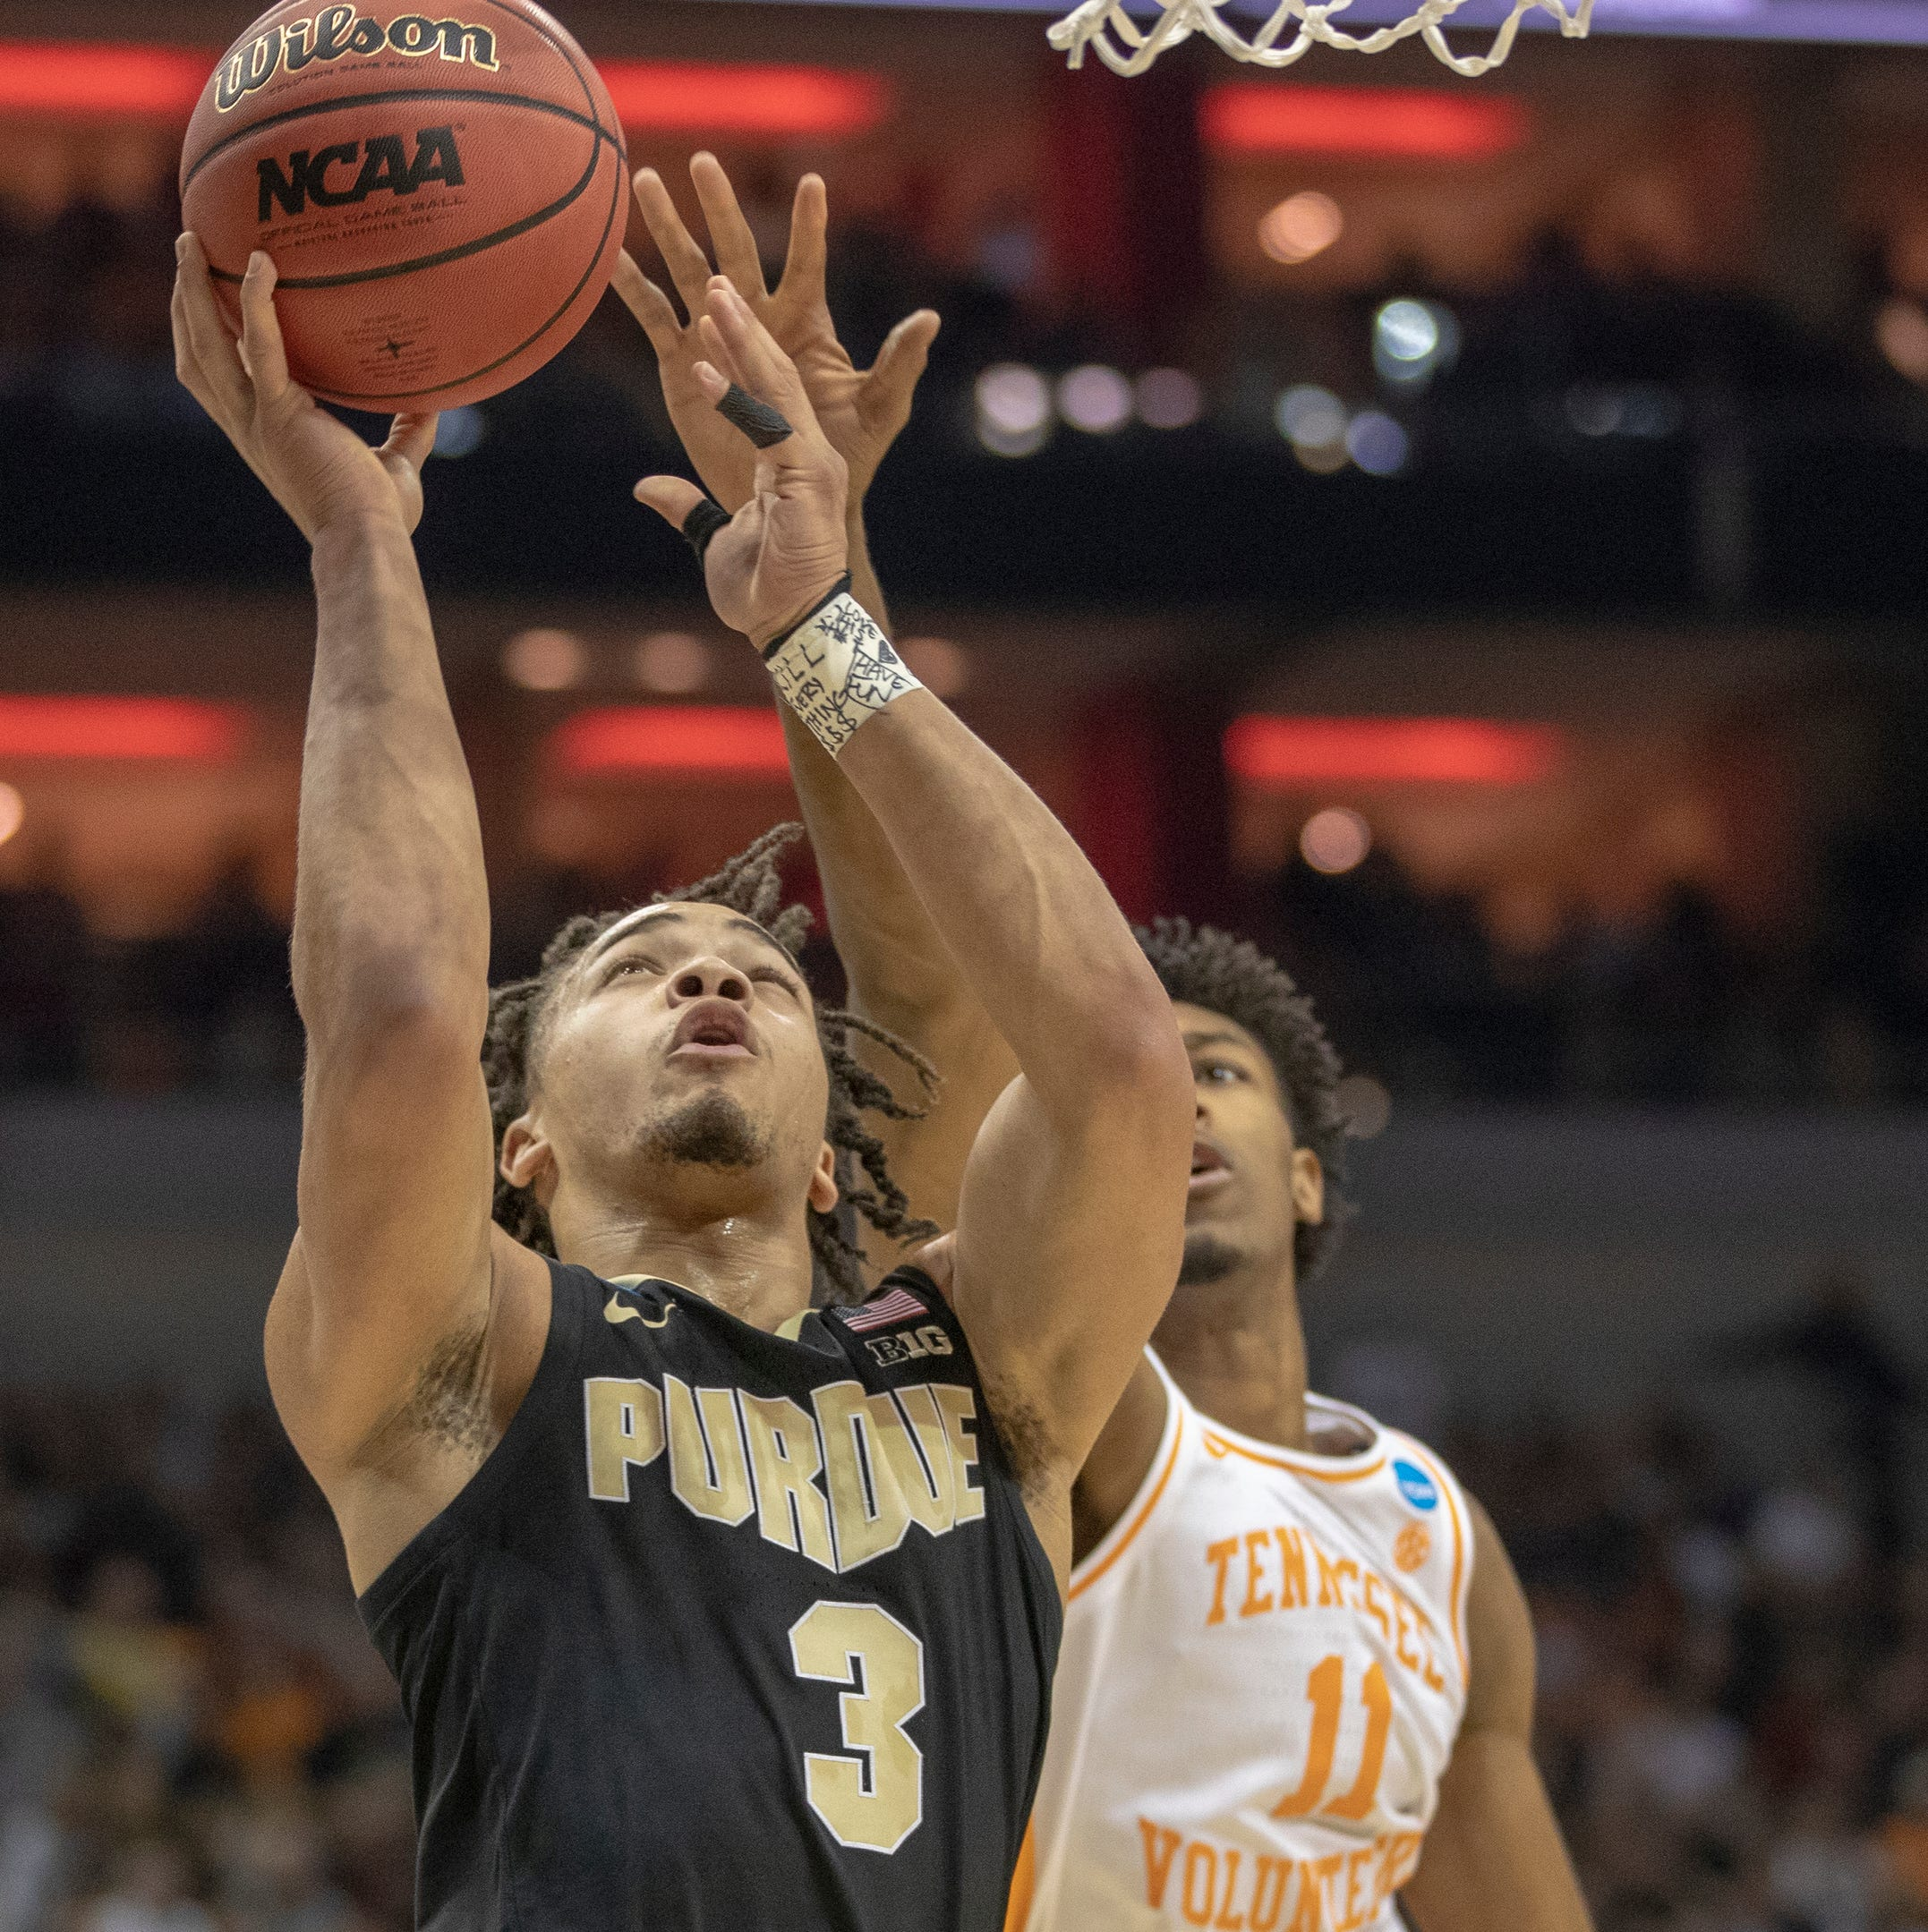 Purdue beat Tennessee in a game for the ages to go to Elite Eight. Twitter is going nuts.